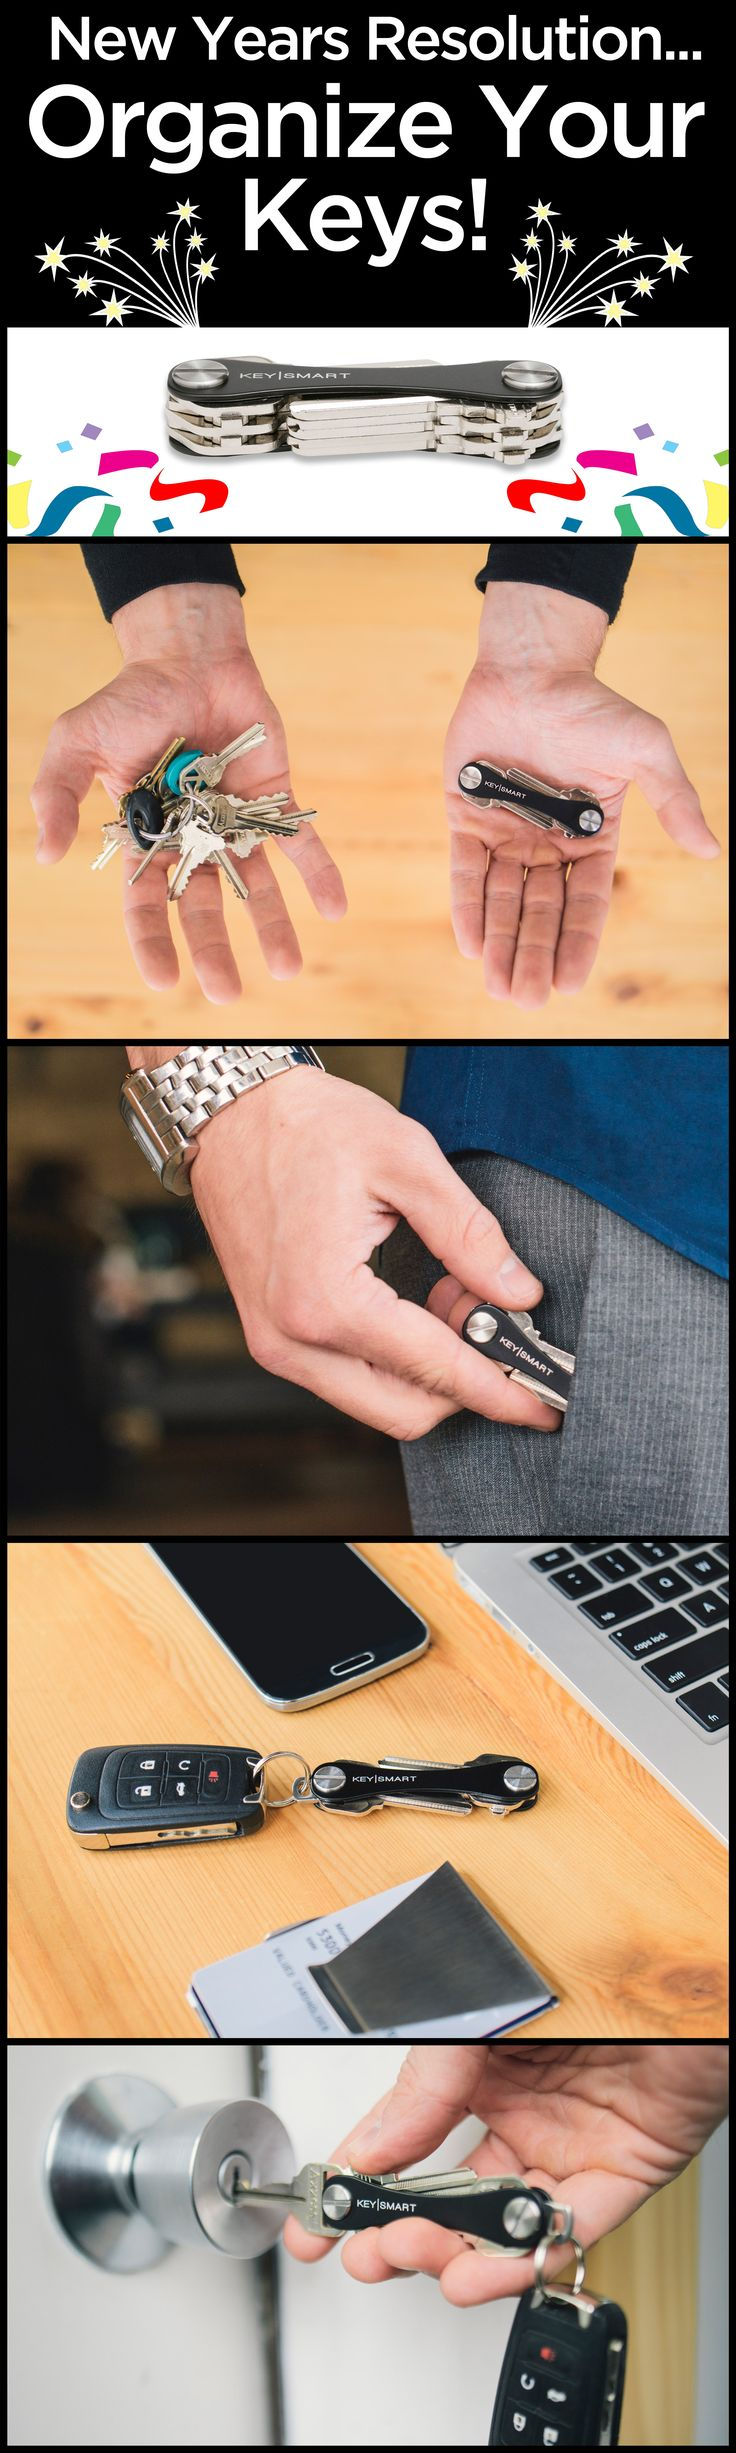 If your New Years resolution is to finally get organized, here's a perfect device to keep your keys nice and orderly! Instead of sorting through that messy key ring, Key Smart makes your keys compact and organized. It saves room in your pockets or purse, and transforms your key ring into a an awesome little multi-tool.